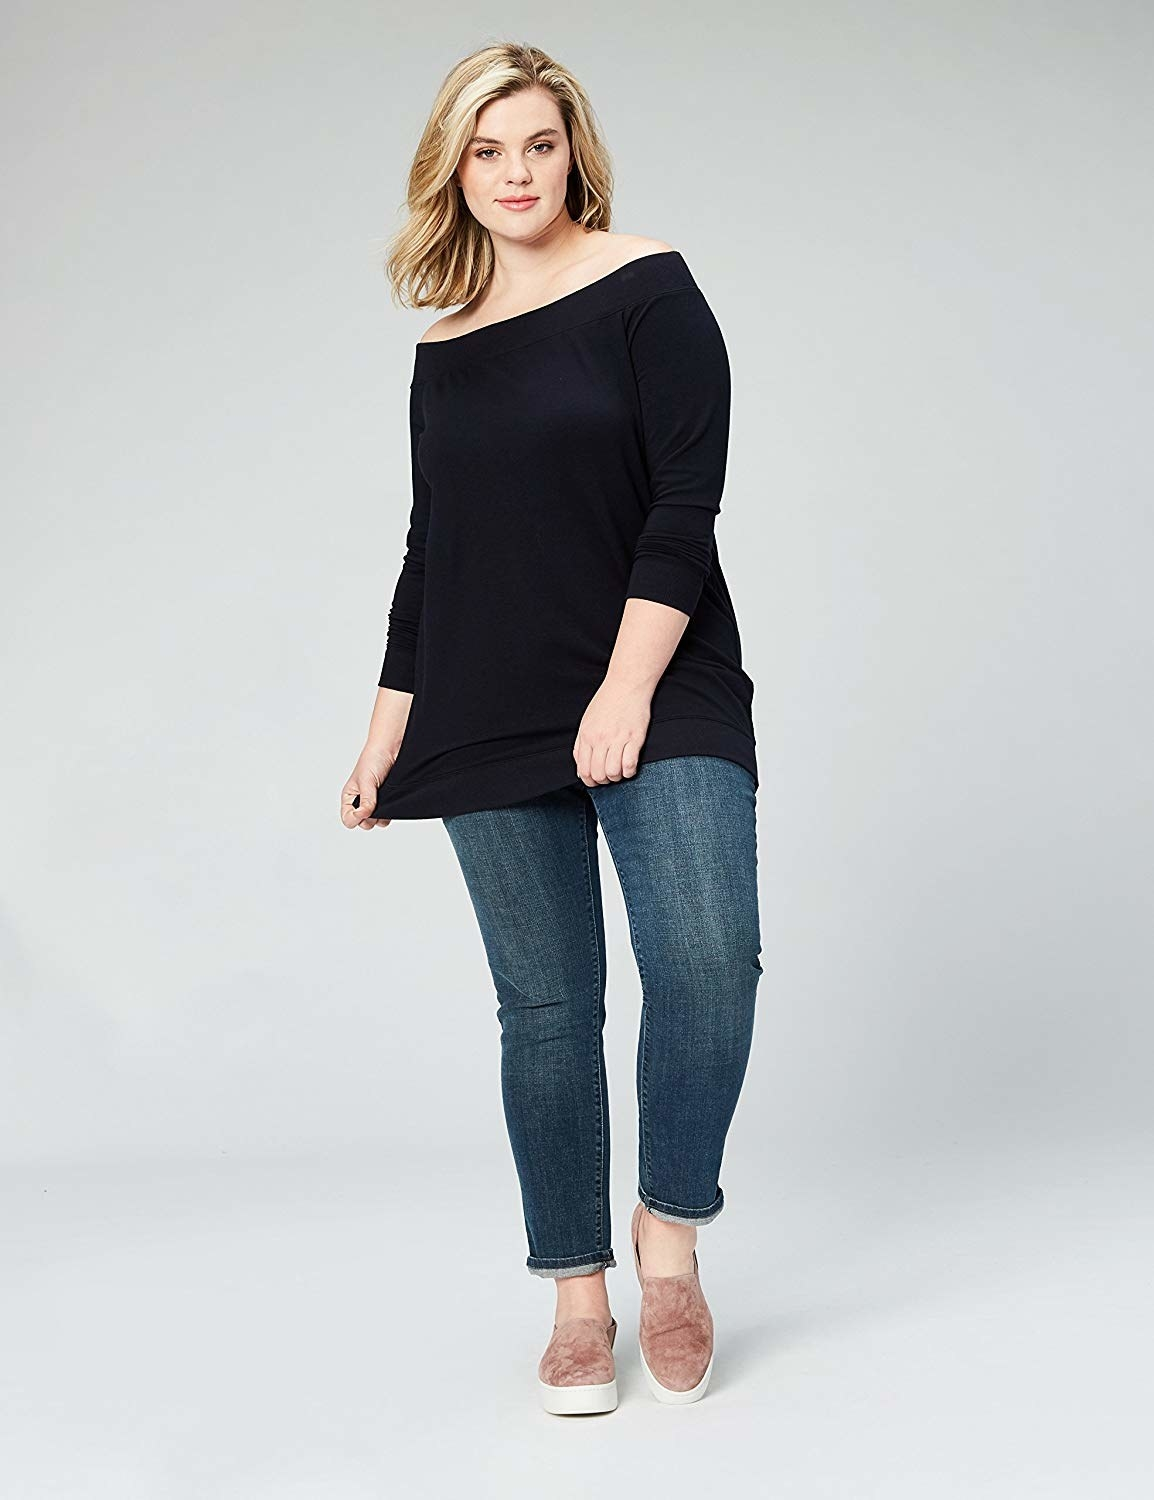 off the shoulder top that's long enough to cover butt